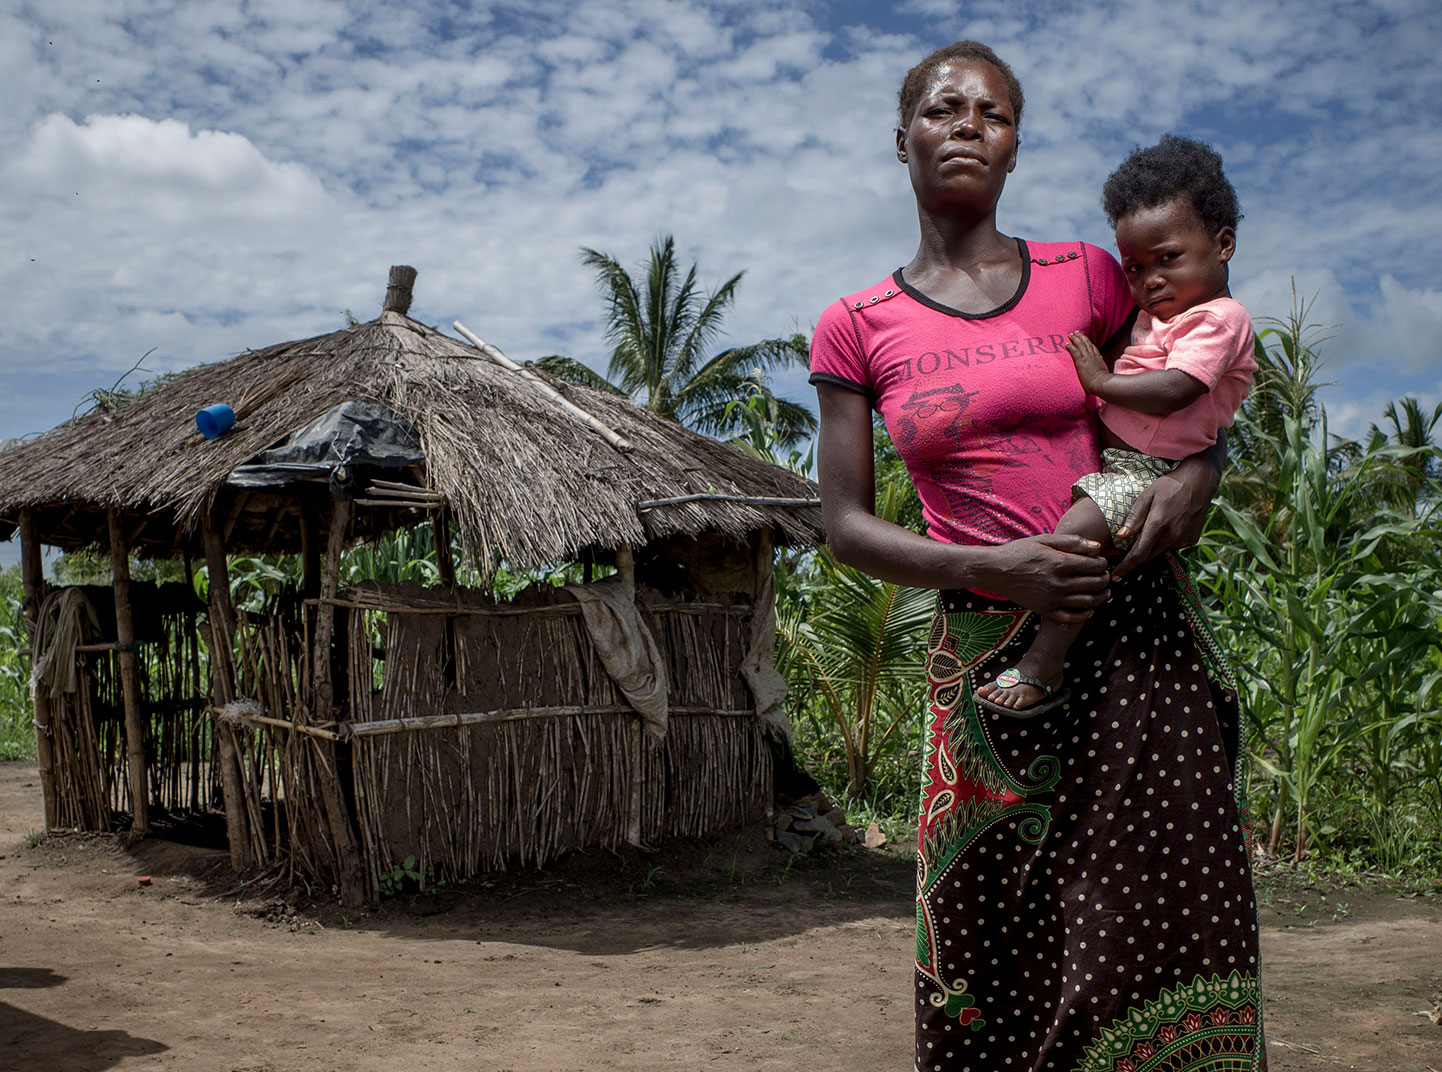 A woman holds her small child in front of a hut.